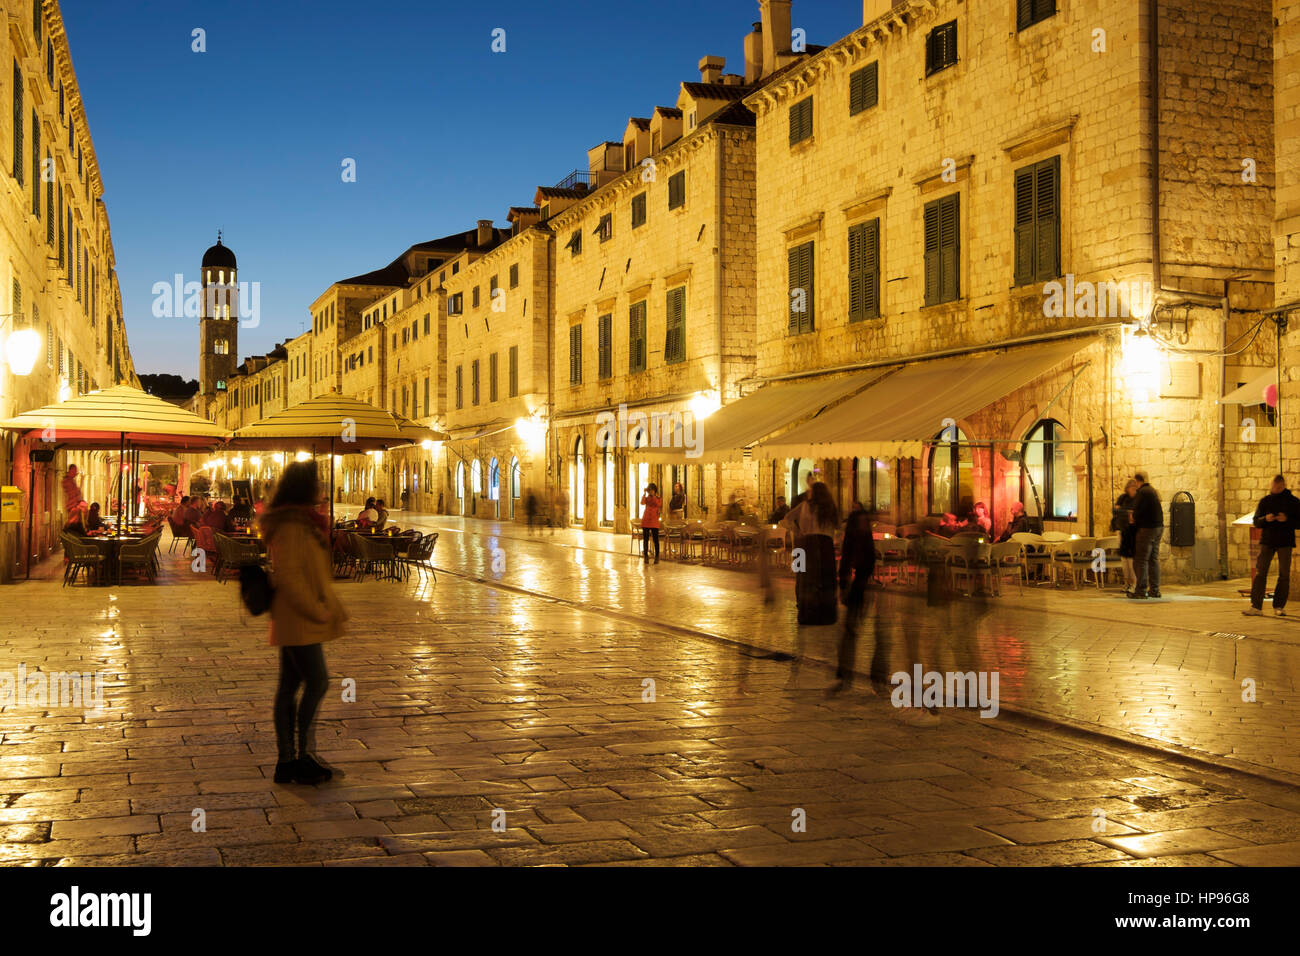 Alfresco dining on the Stradum (Placa), early evening, Old town, Dubrovnic, Croatia Stock Photo